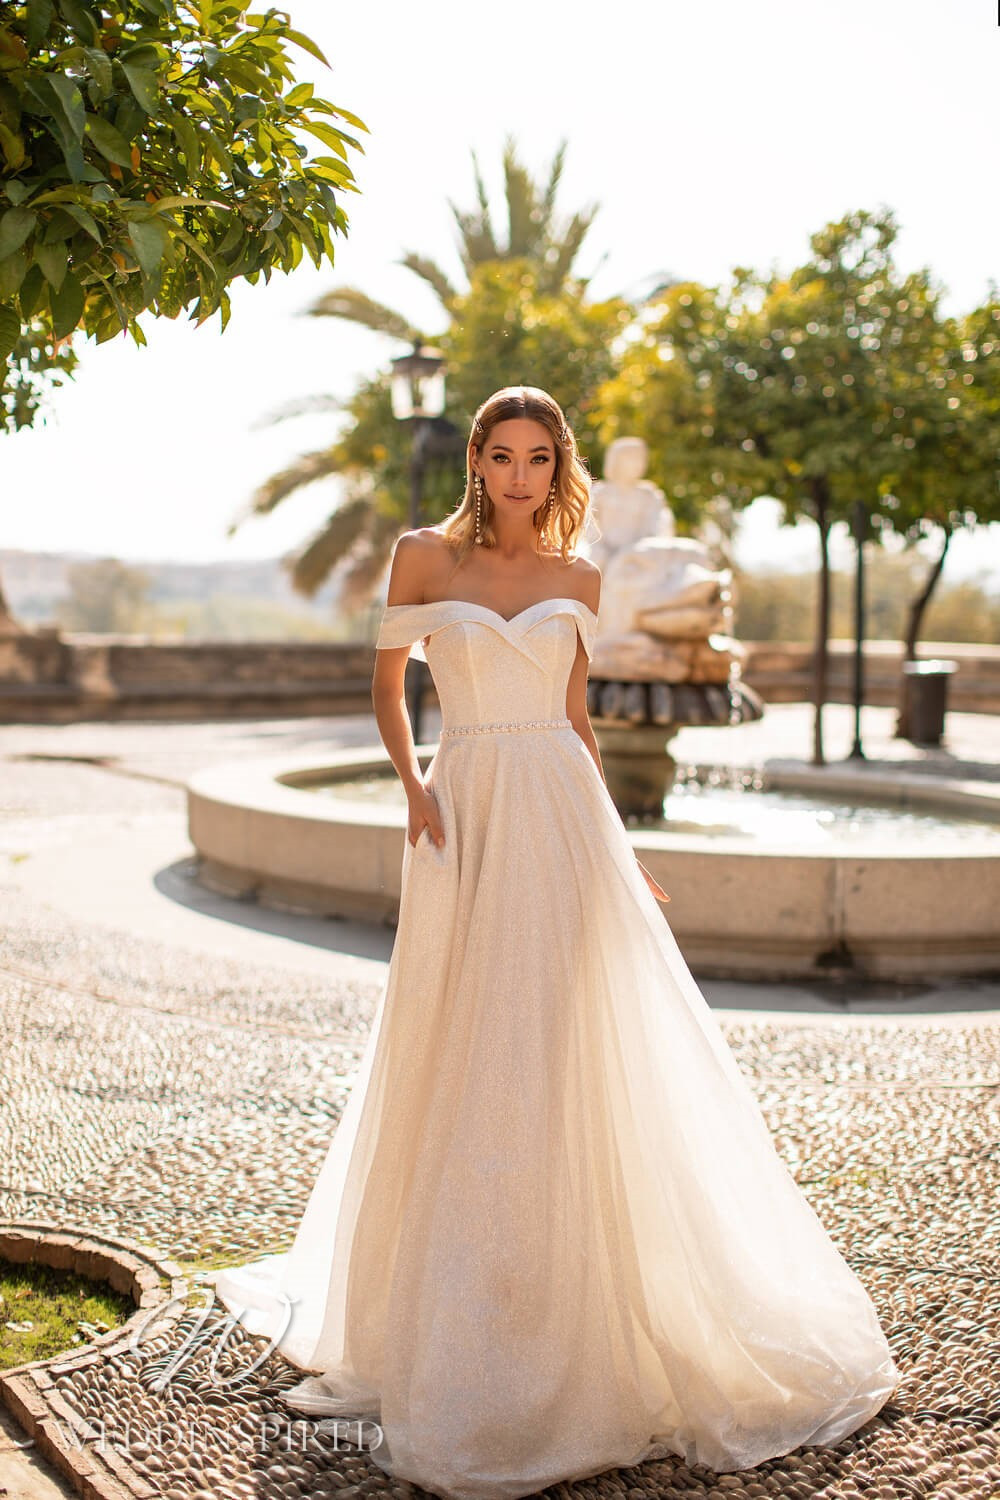 An Essential by Lussano 2021 sparkly blush off the shoulder A-line wedding dress